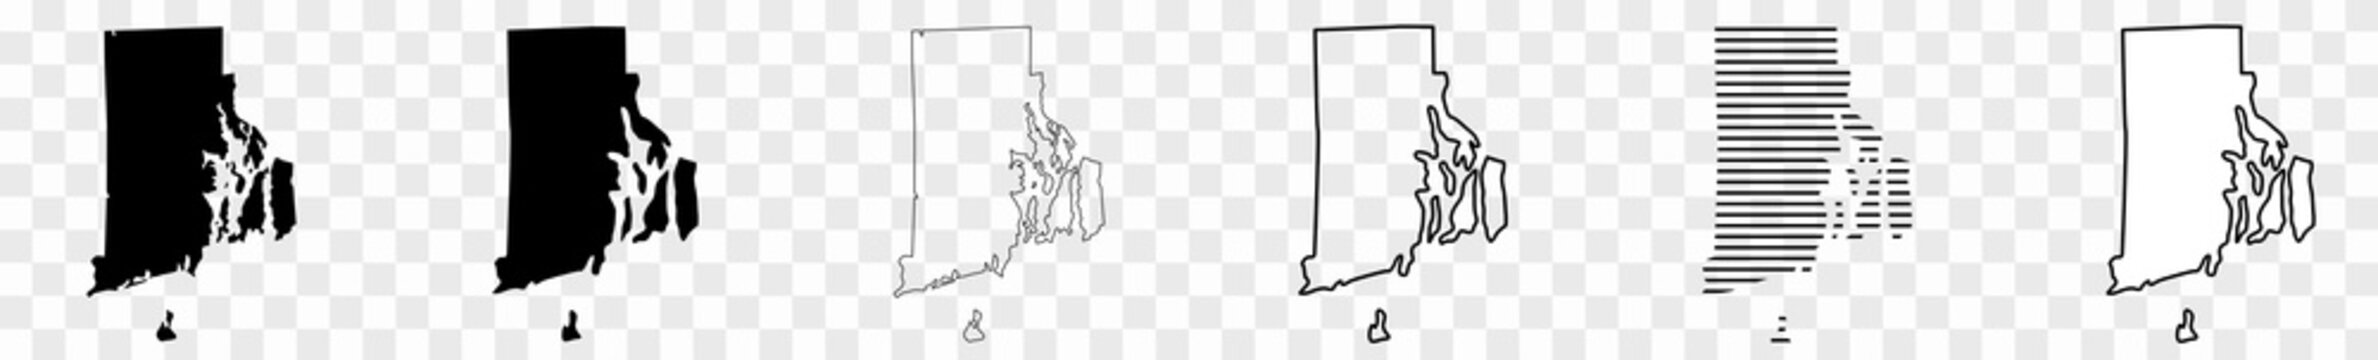 Rhode Island Map Black | State Border | United States | US America | Transparent Isolated | Variations